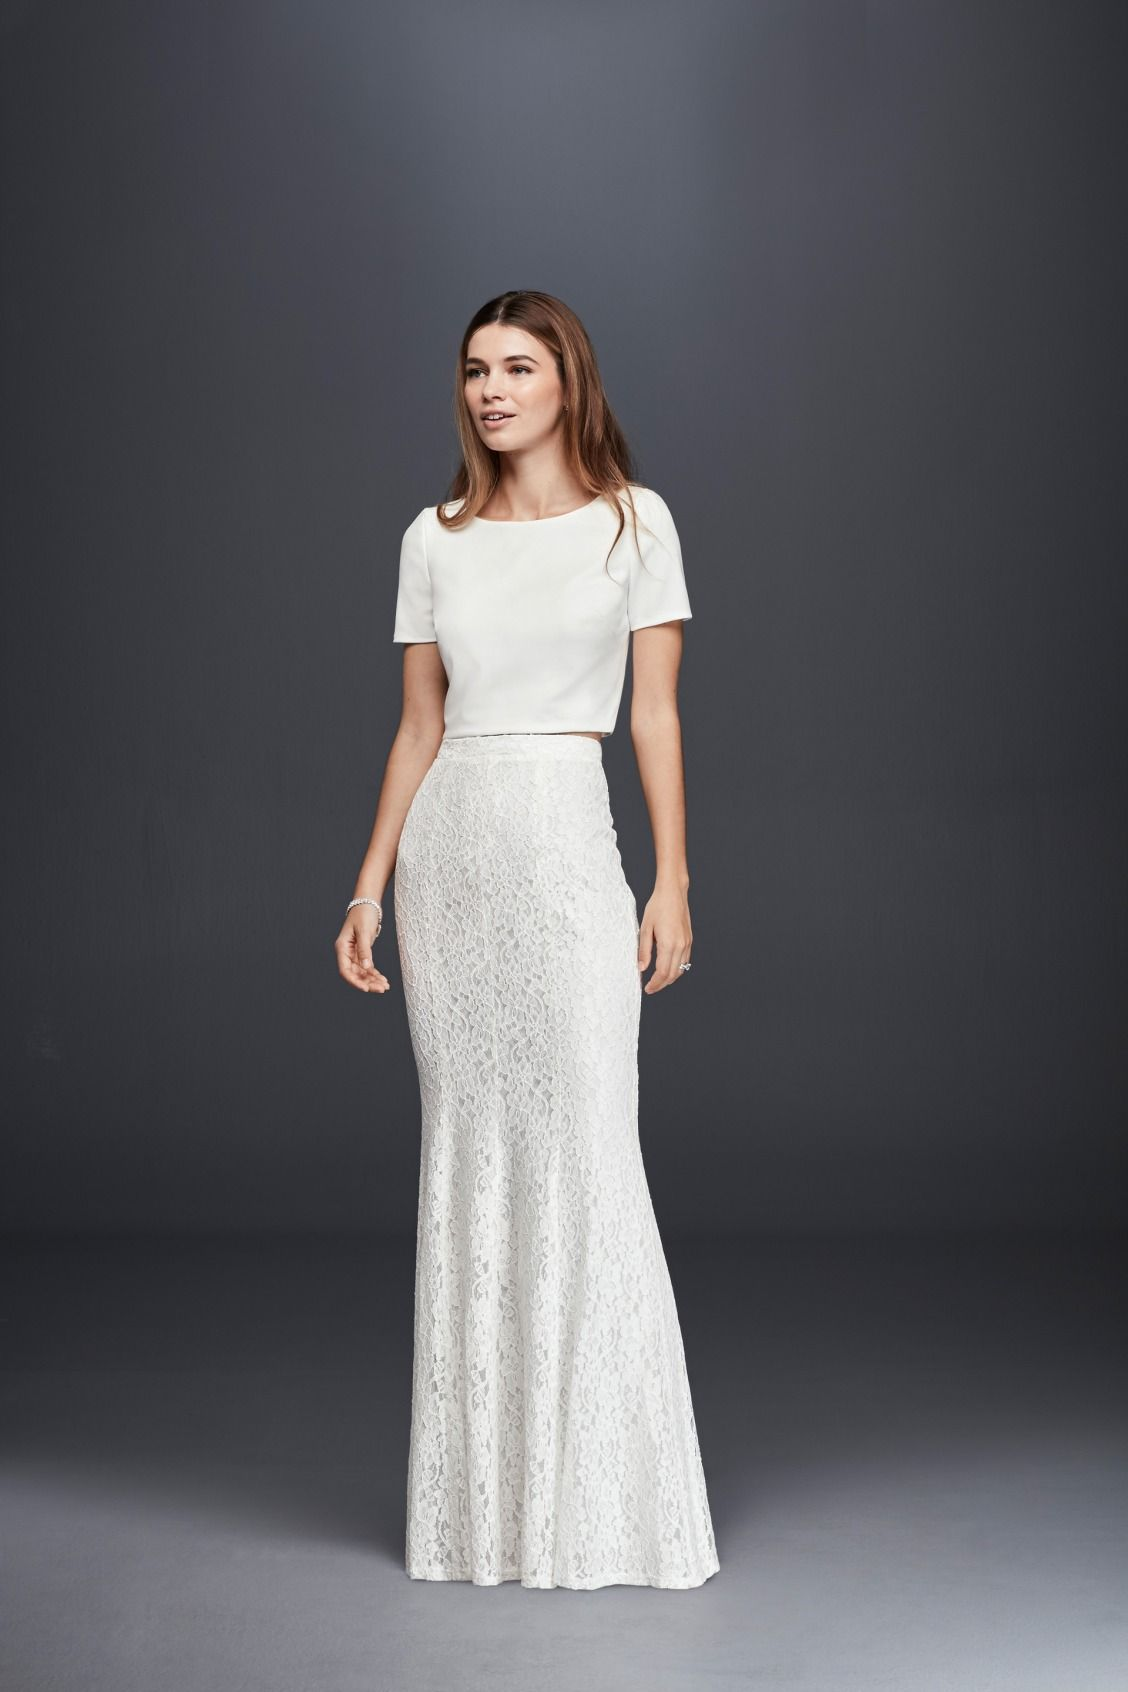 The Chic Bridal Two Piece This Slim Lace Skirt Pairs Perfectly With